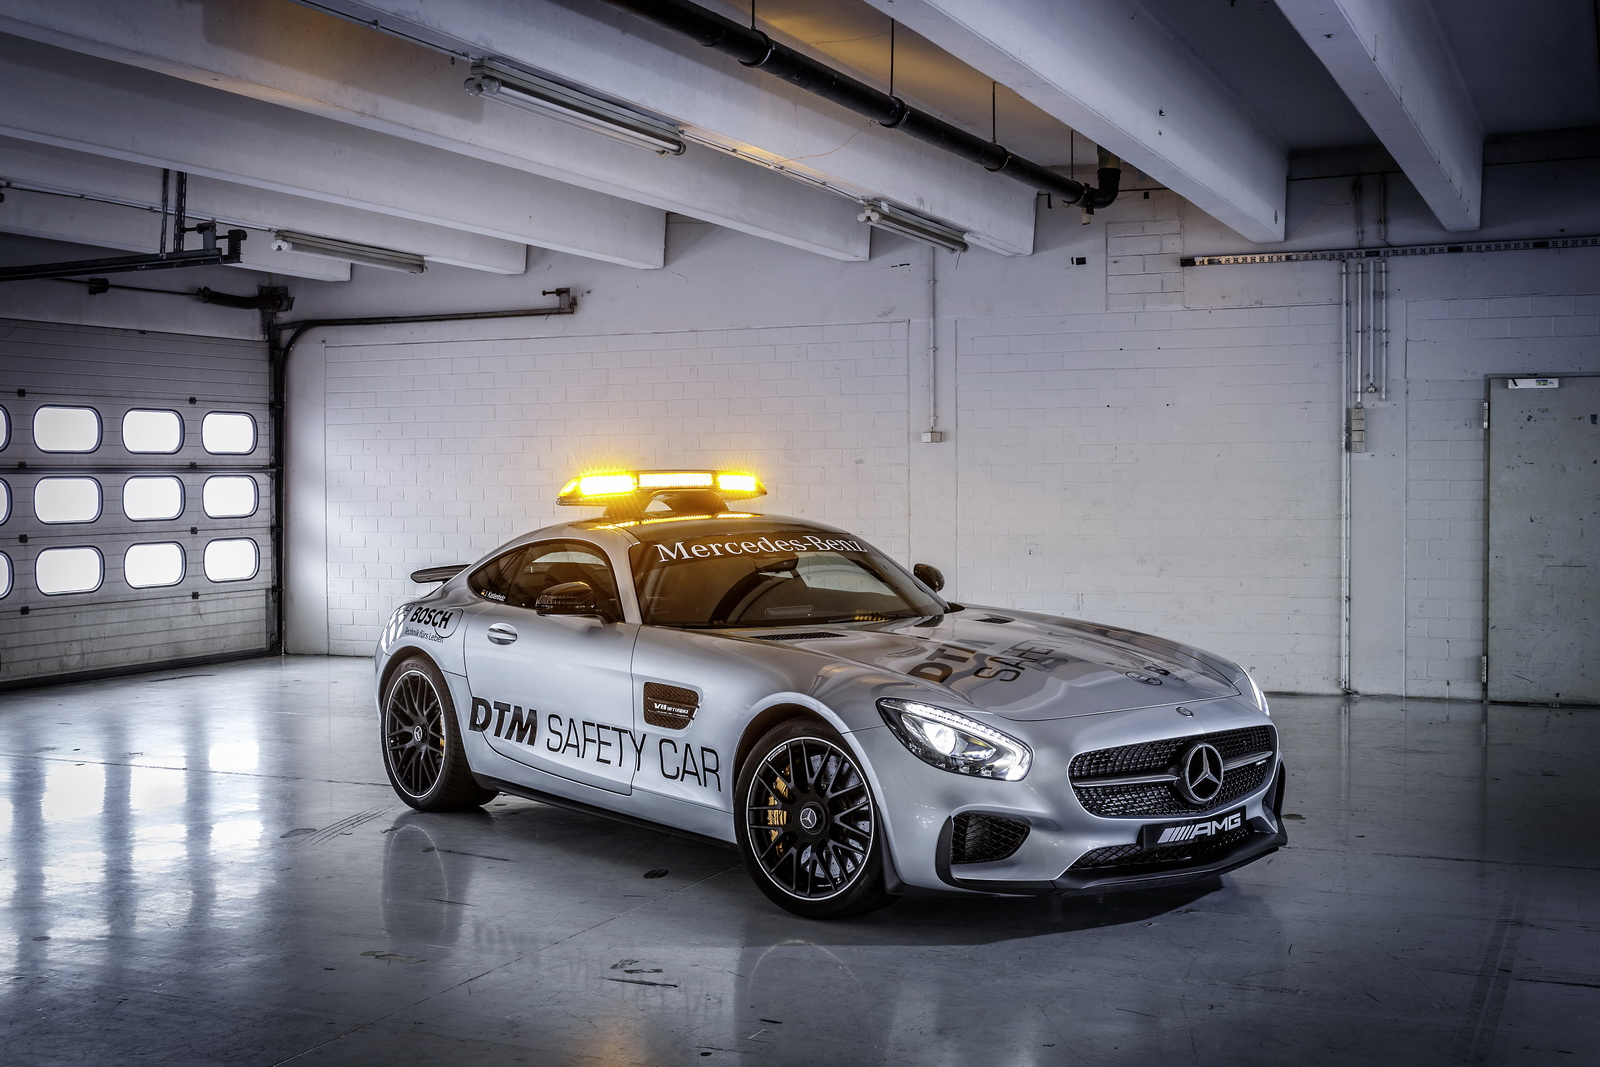 mercedes-amg gt s unveiled as dtm safety car - gtspirit